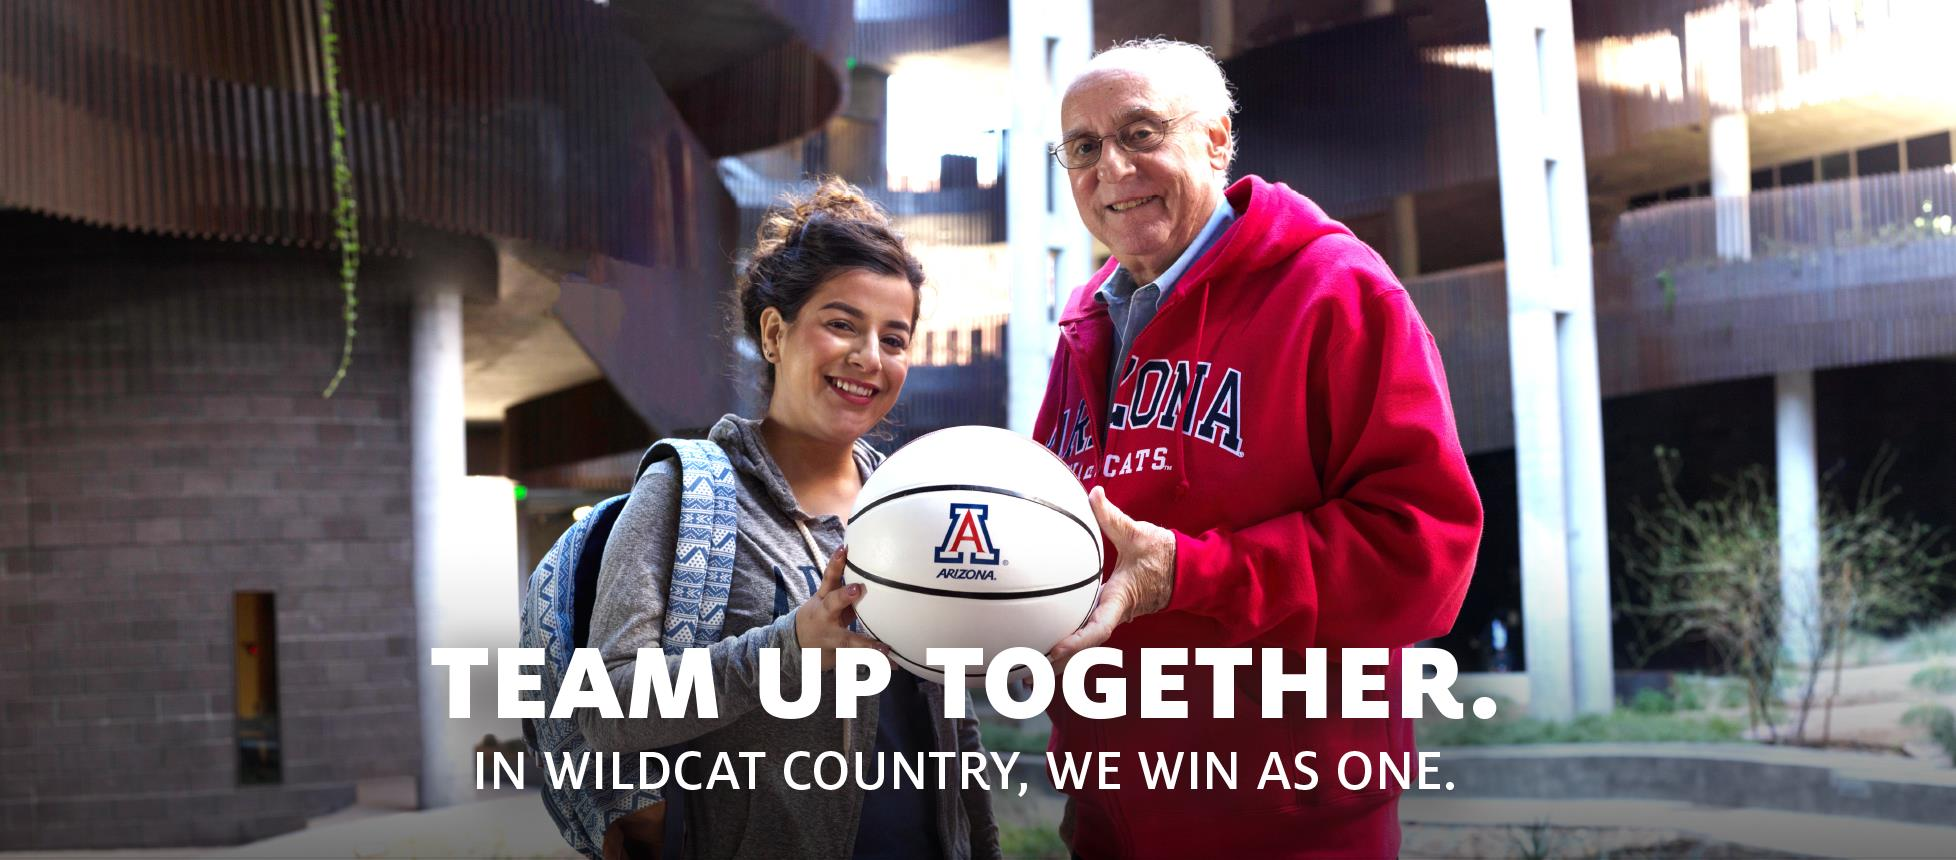 Team up together. In Wildcat country, we win as one. »